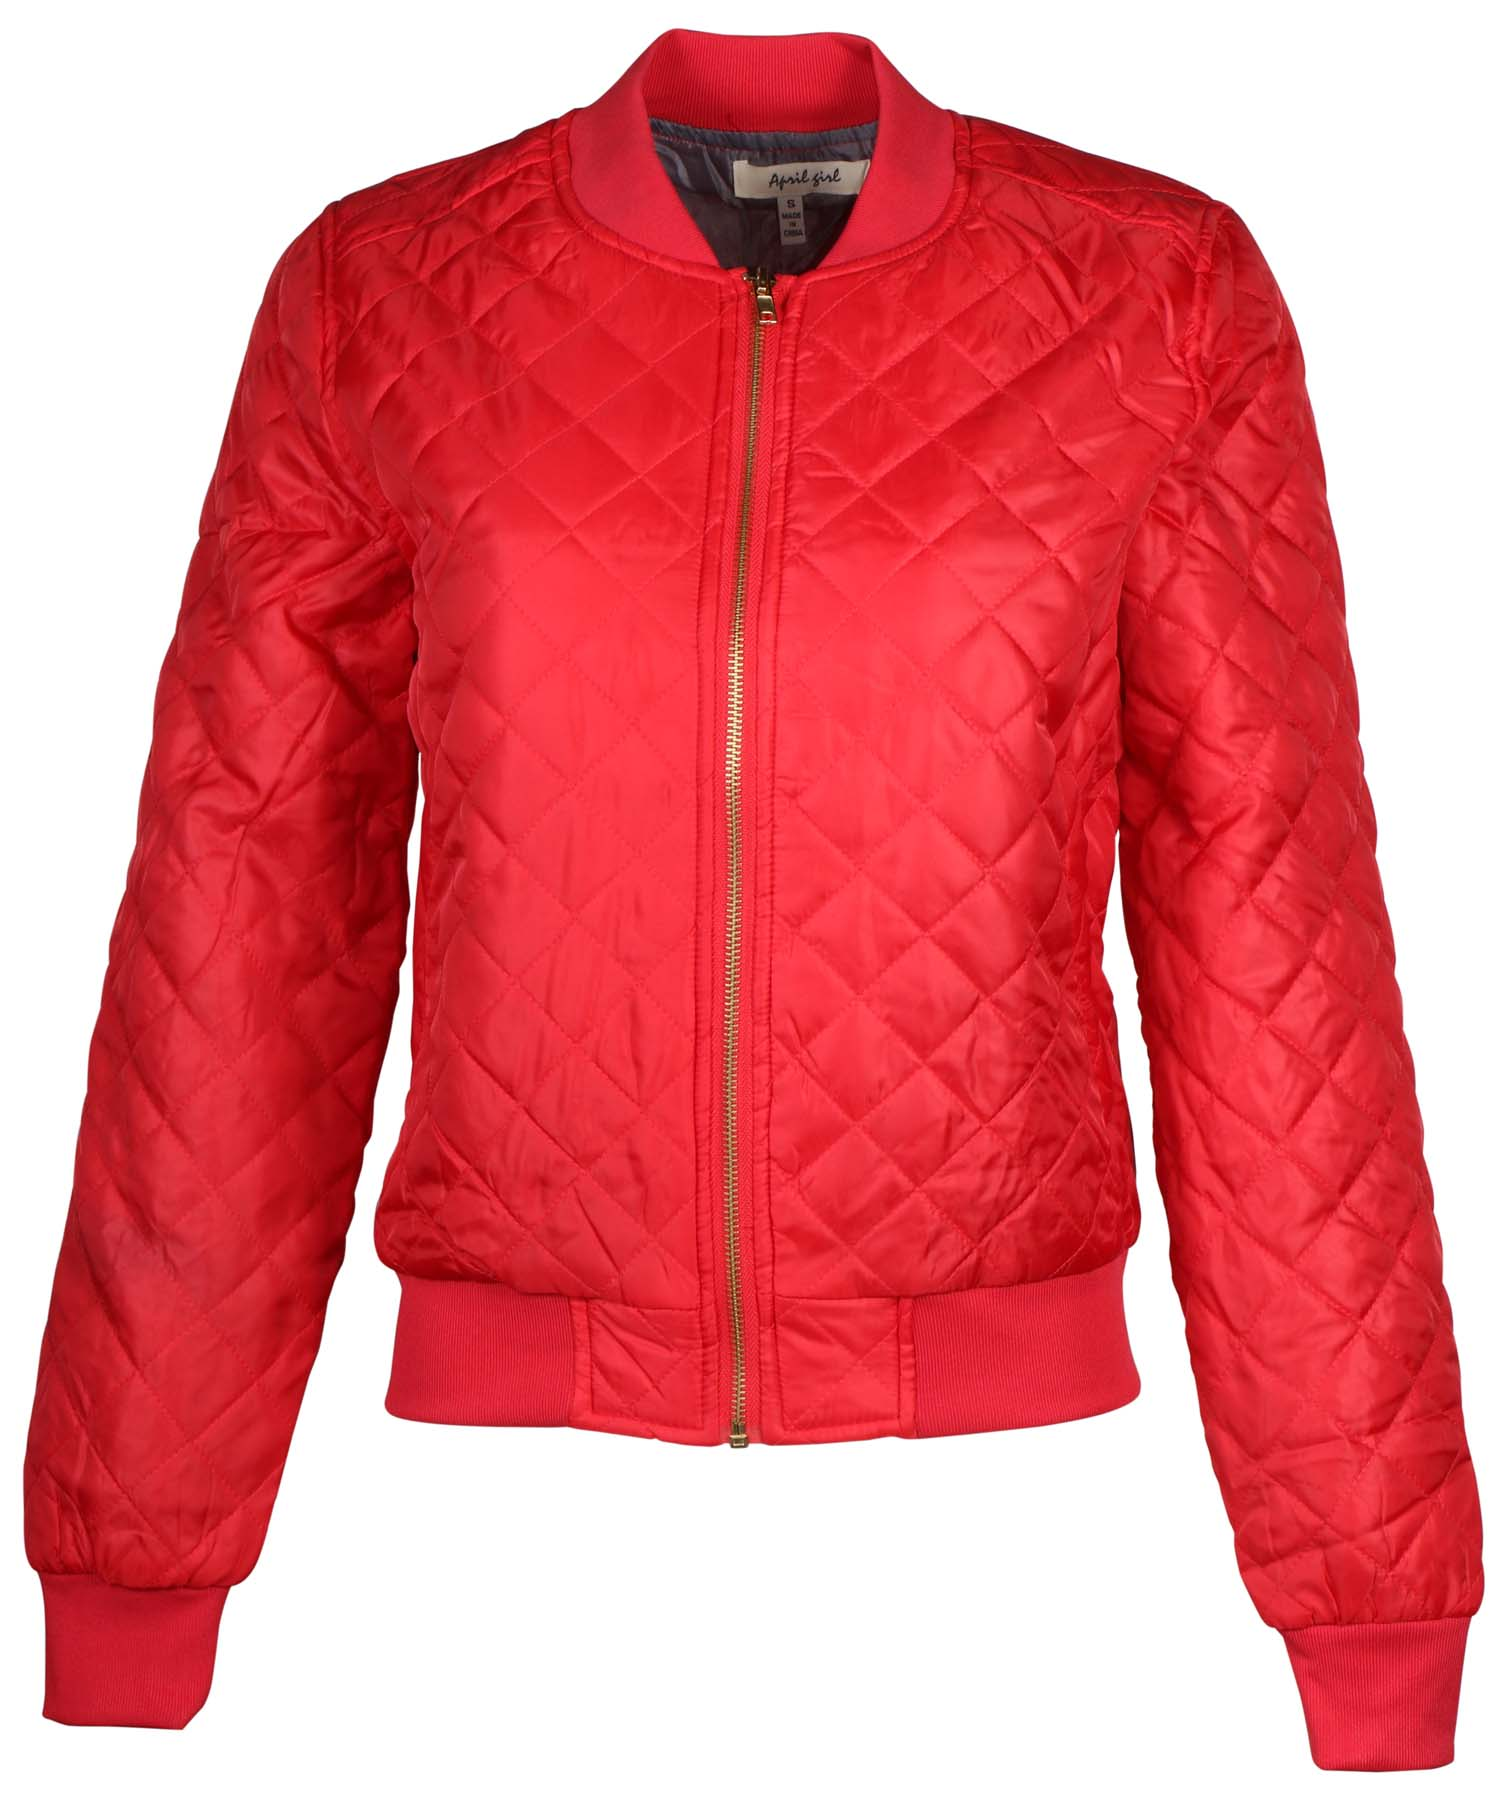 AG Womens Quilted Bomber Jacket by 9 Crowns Essentials by 9 Crowns